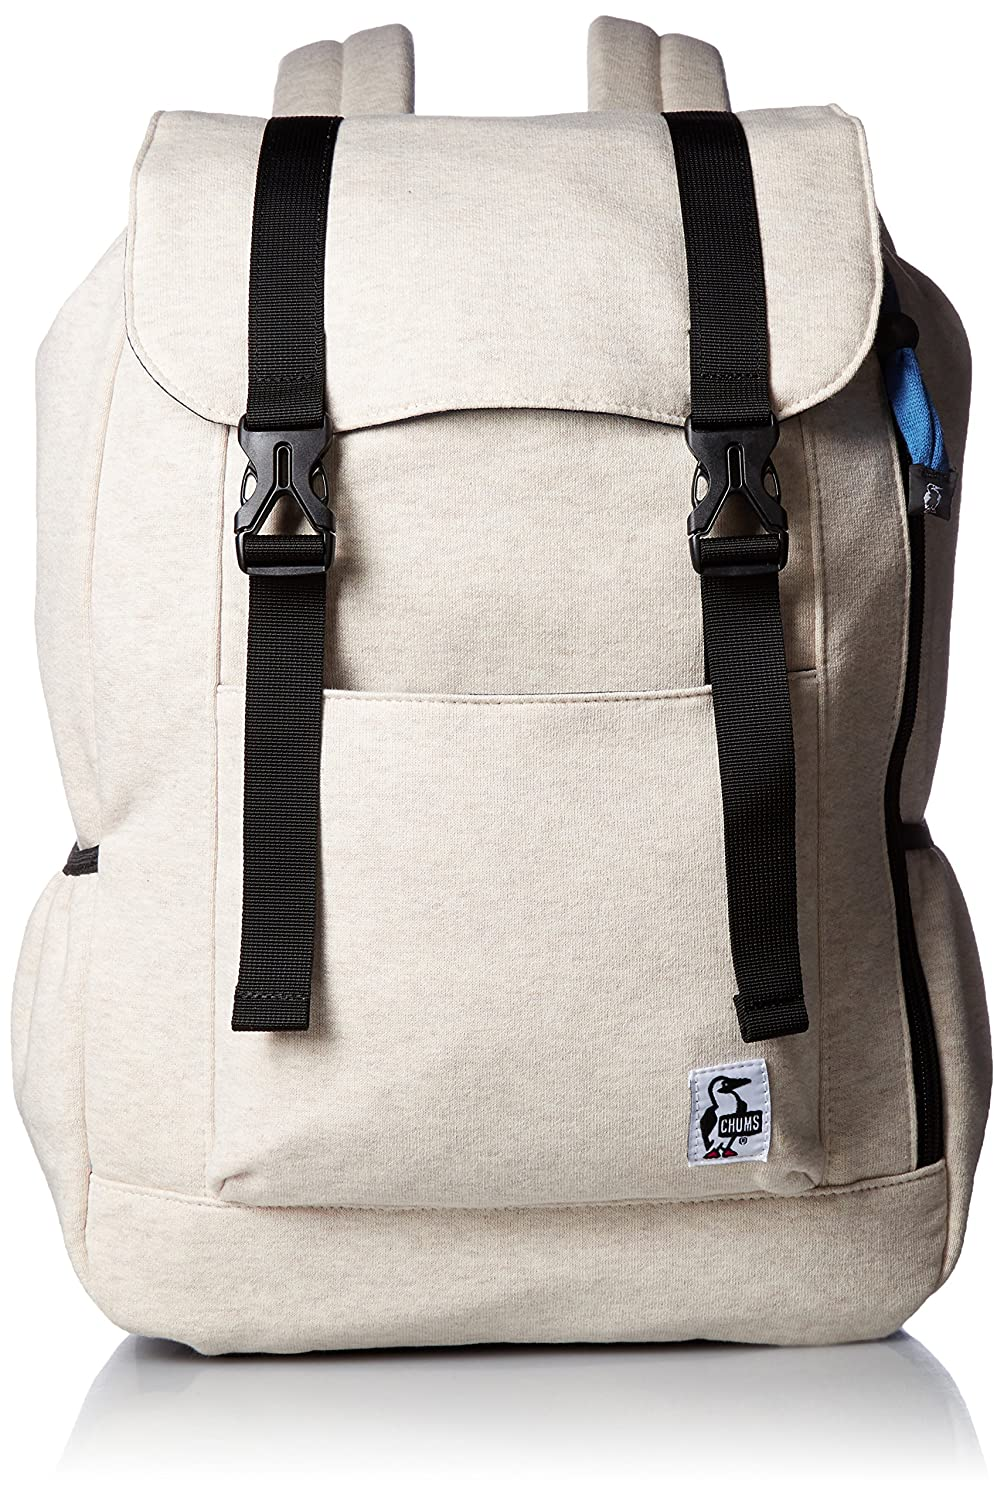 [チャムス] リュック Flap Day Pack Sweat CH60-2076-0118-00 B06WWRMC5M H/Natural H/Natural